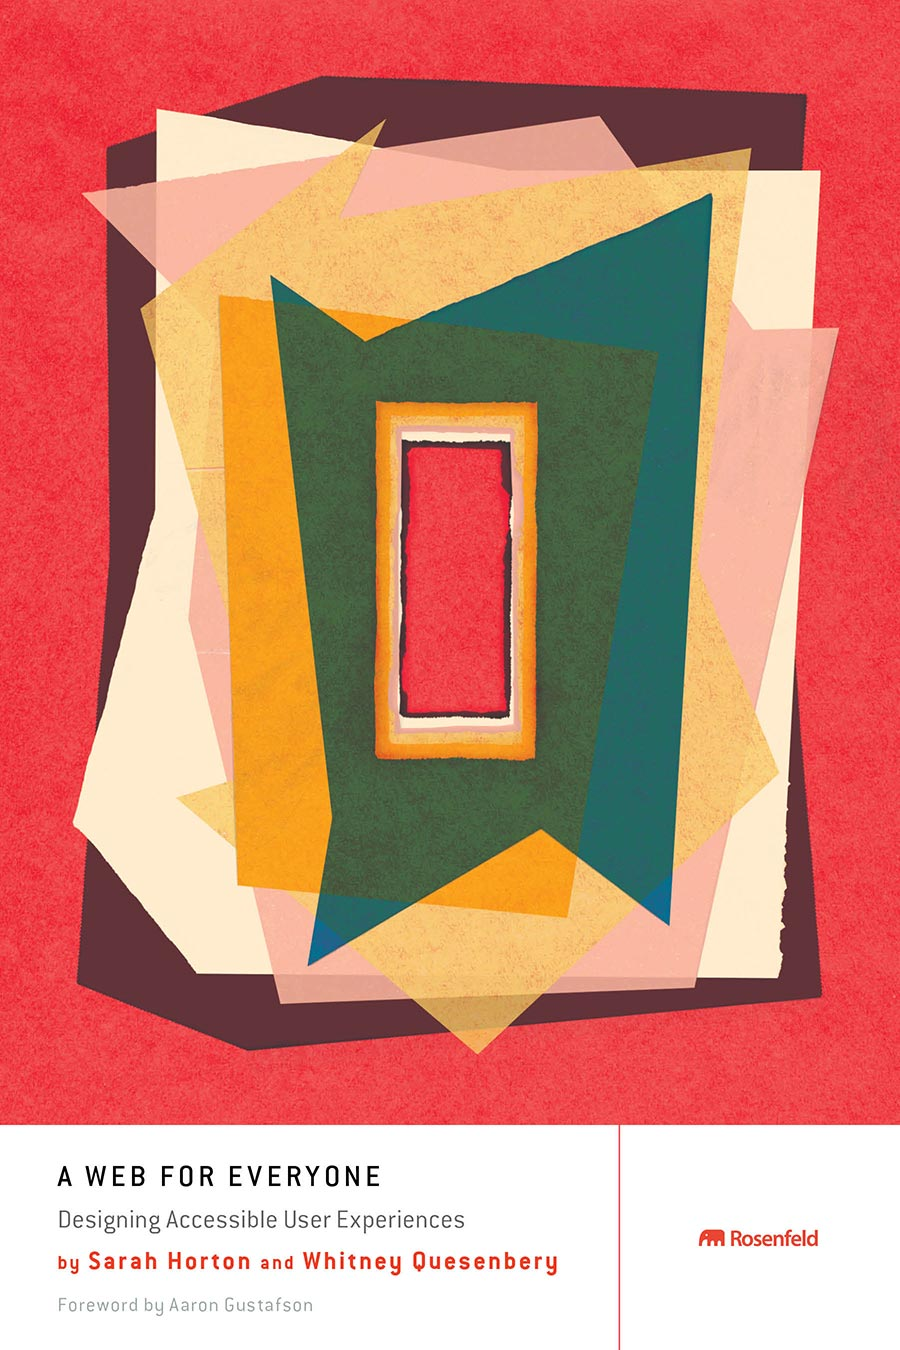 The cover for A Web For Everyone; Red cover with abstract geometric shapes and rectangles nesting inside each others in shades of red, yellow, pink, orange, and green.